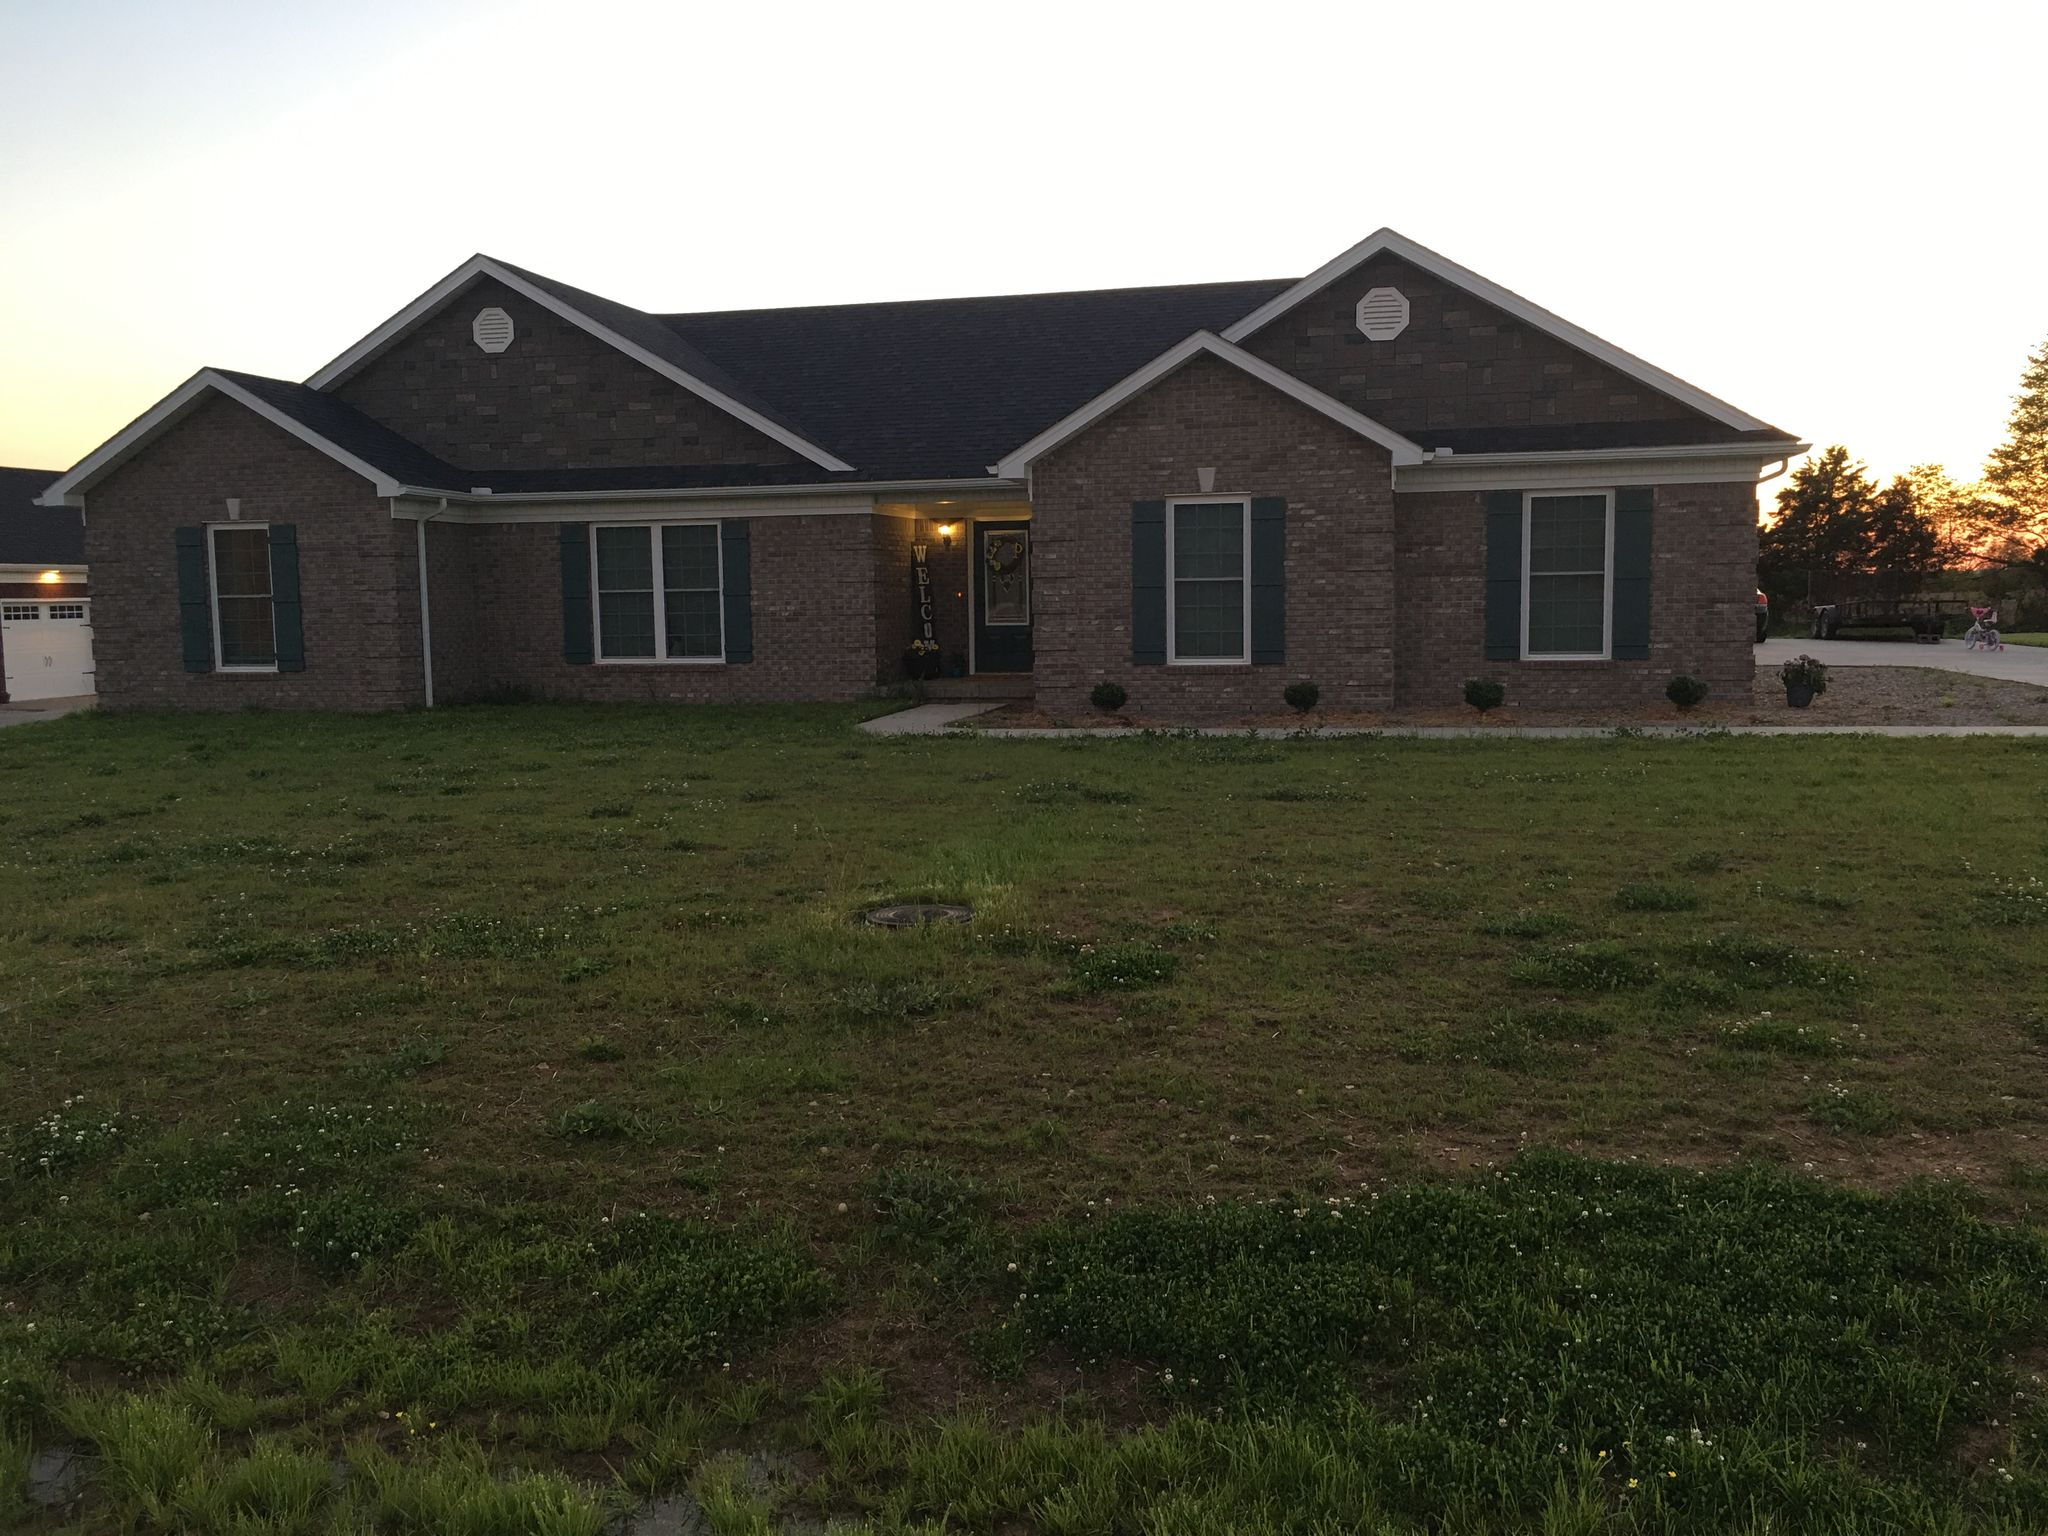 This Can Be A Completely New Image Of Patio Homes for Sale Bardstown Ky